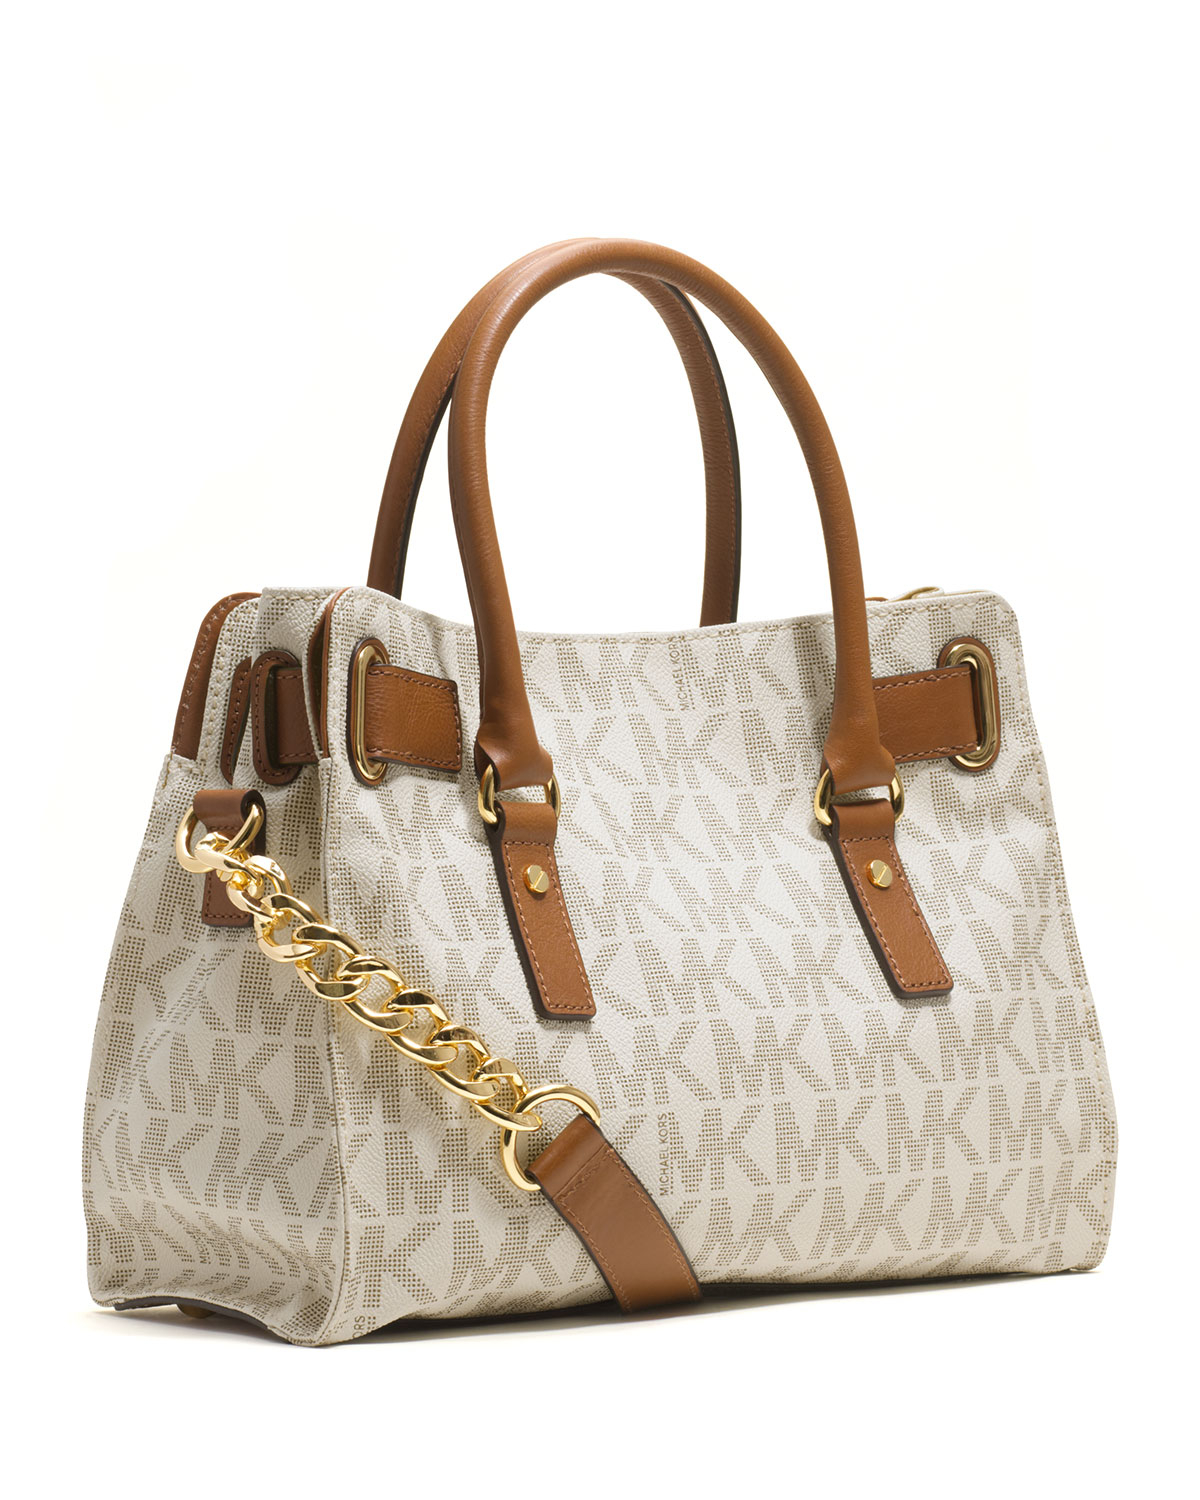 79bc1c5055af ... canada lyst michael michael kors hamilton logo satchel bag in brown  c9be8 8a9cd